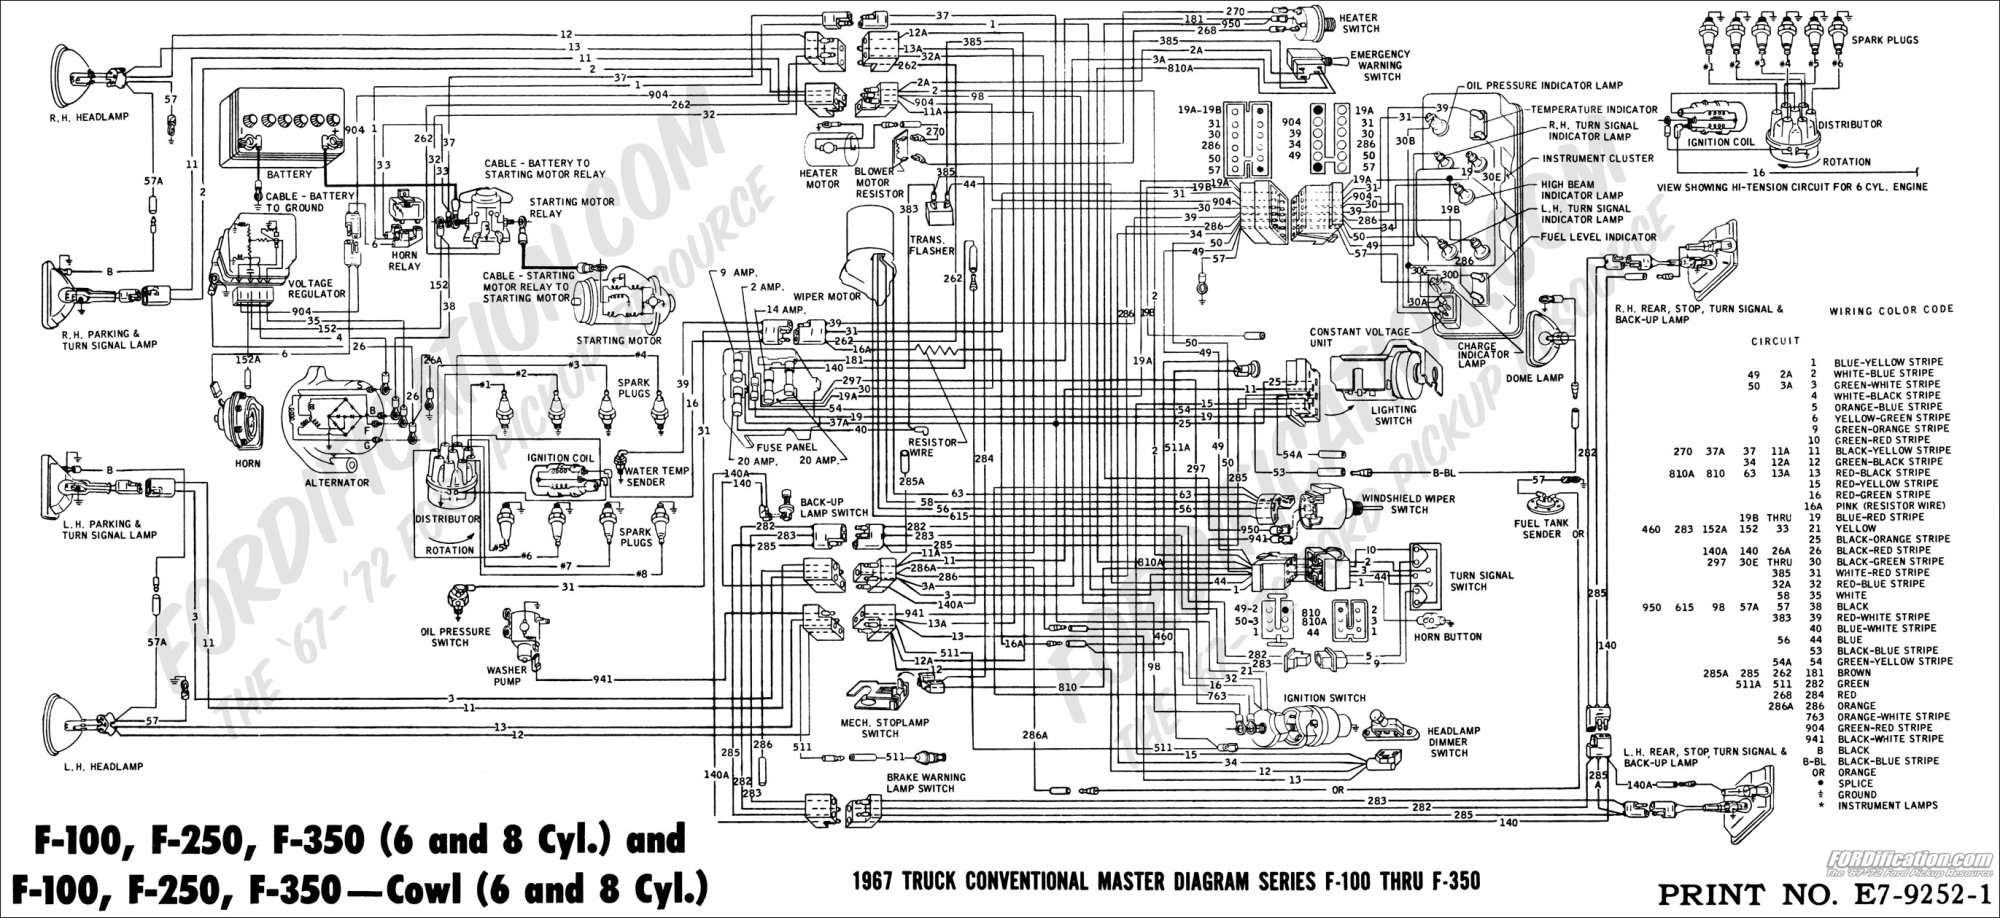 hight resolution of 1983 f150 4 9 engine diagram wiring diagram for you 2006 ford f 150 wiring diagram 94 ford f 150 wiring diagram